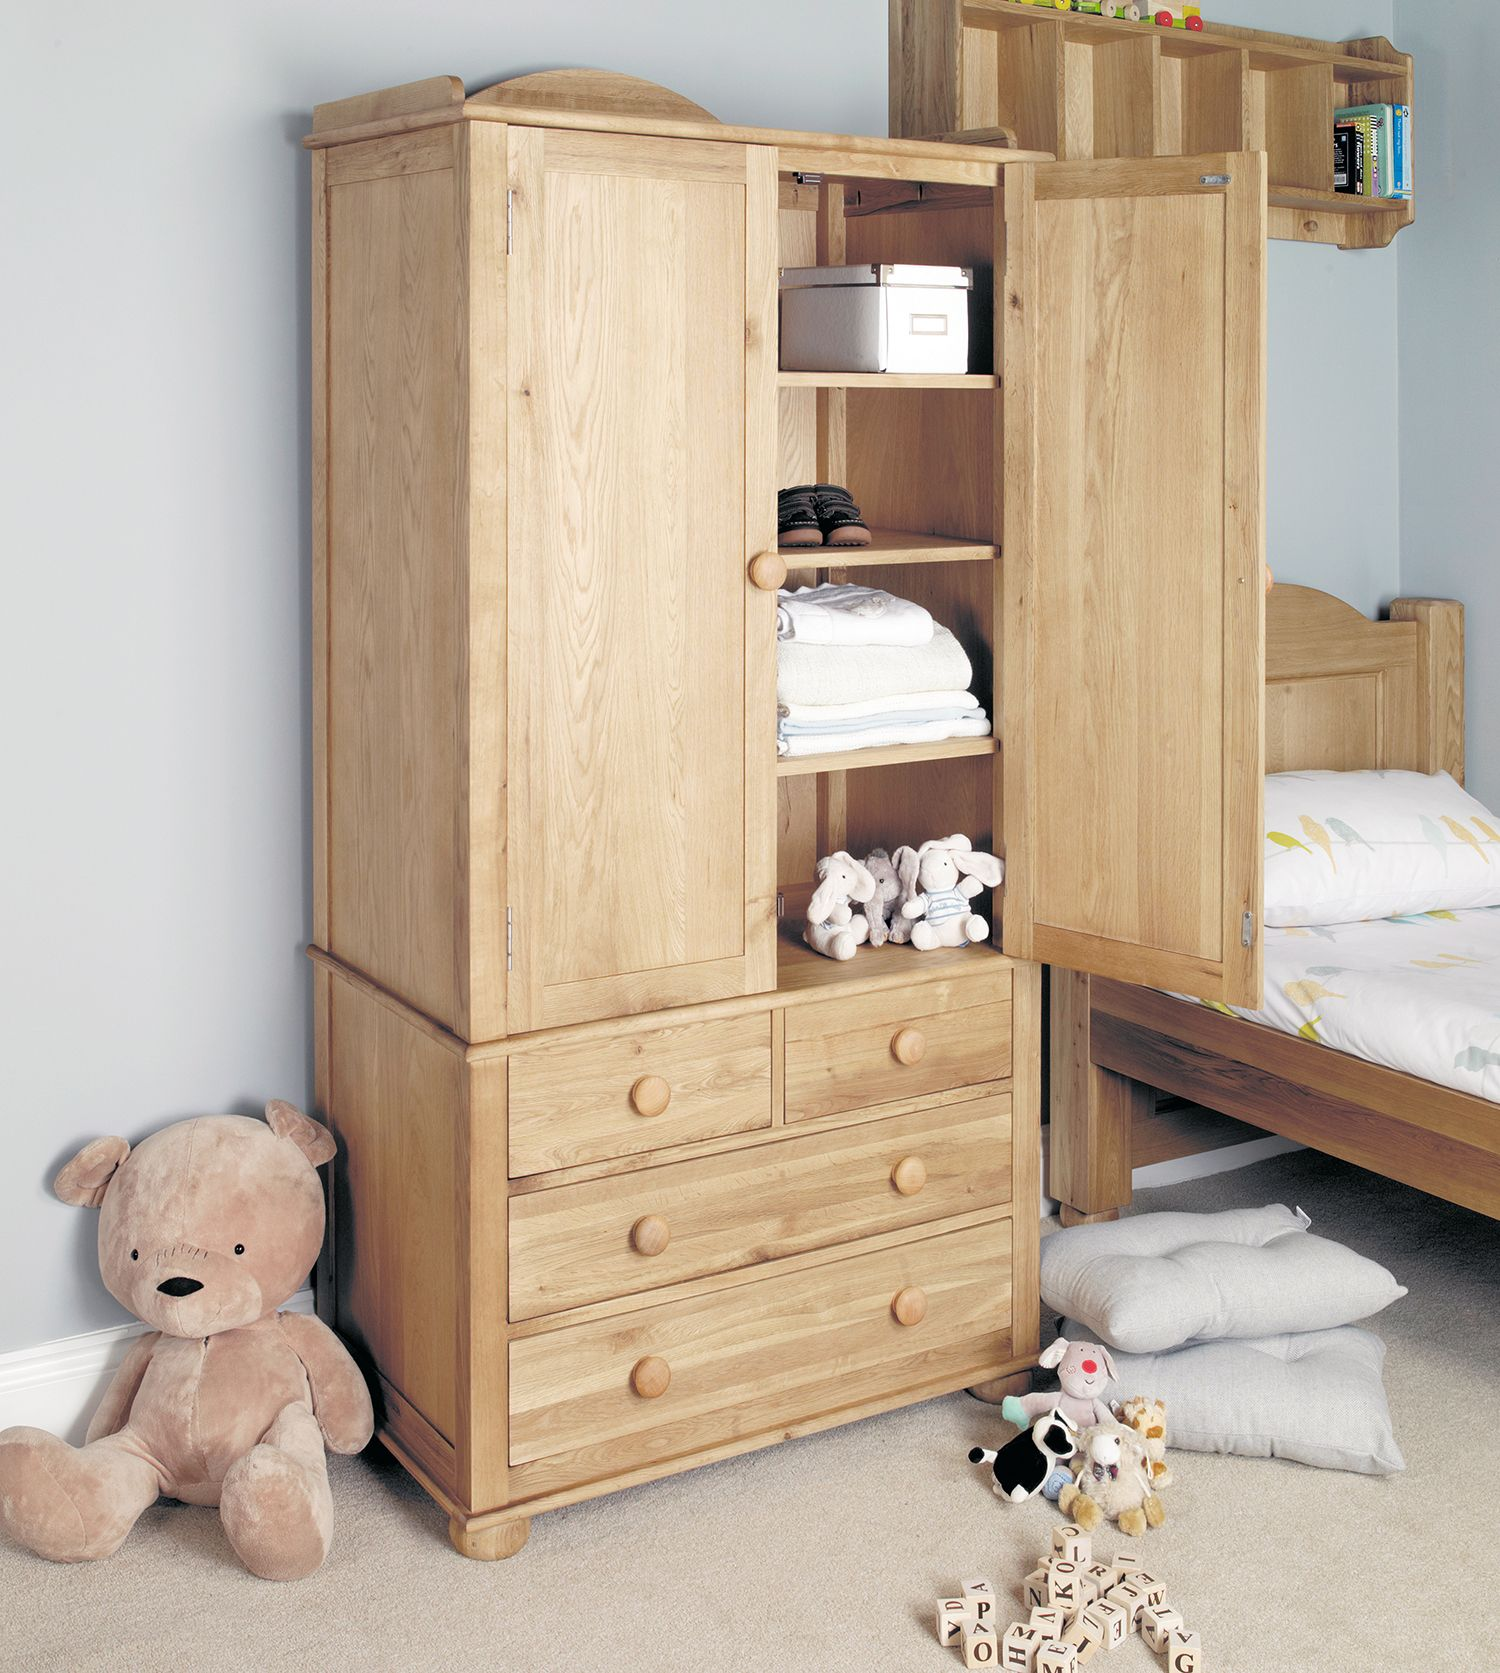 Amelie Nursery Double Wardrobe With 4 Drawers Solid Wood Furniture With A Natural Neutral Finish Wardrobe Furniture Furniture Bedroom Furniture